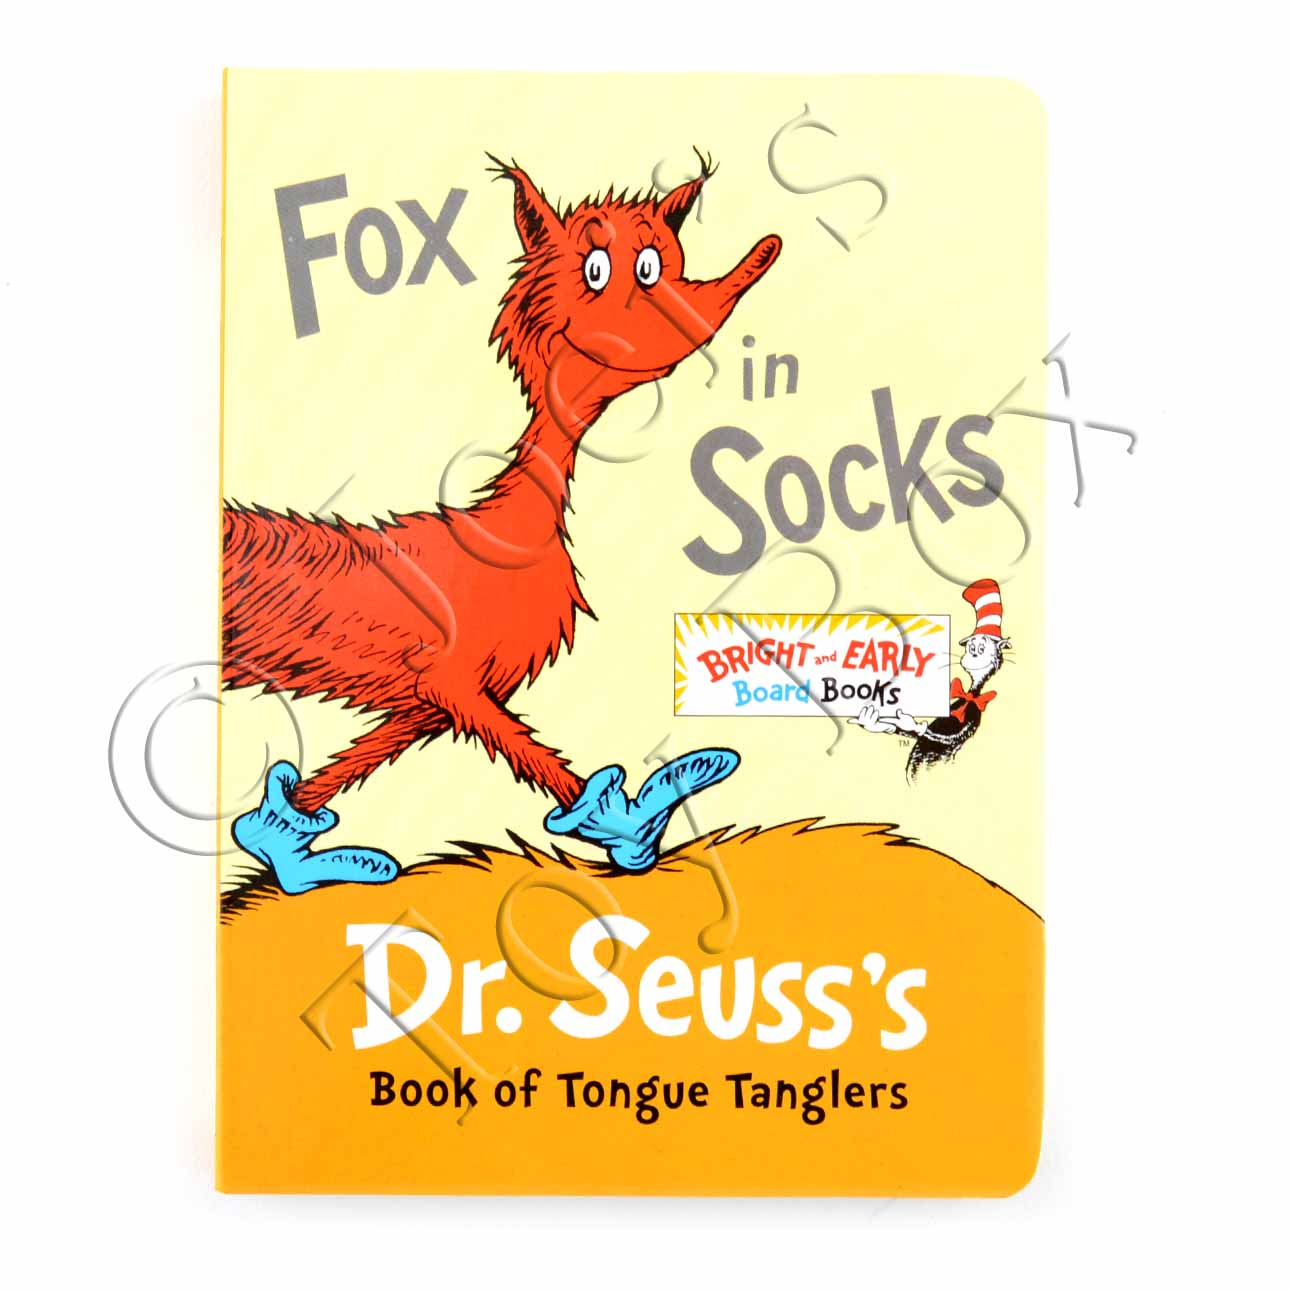 Dr seuss fox in socks pictures Best free iPad apps 2018: the top titles we've tried